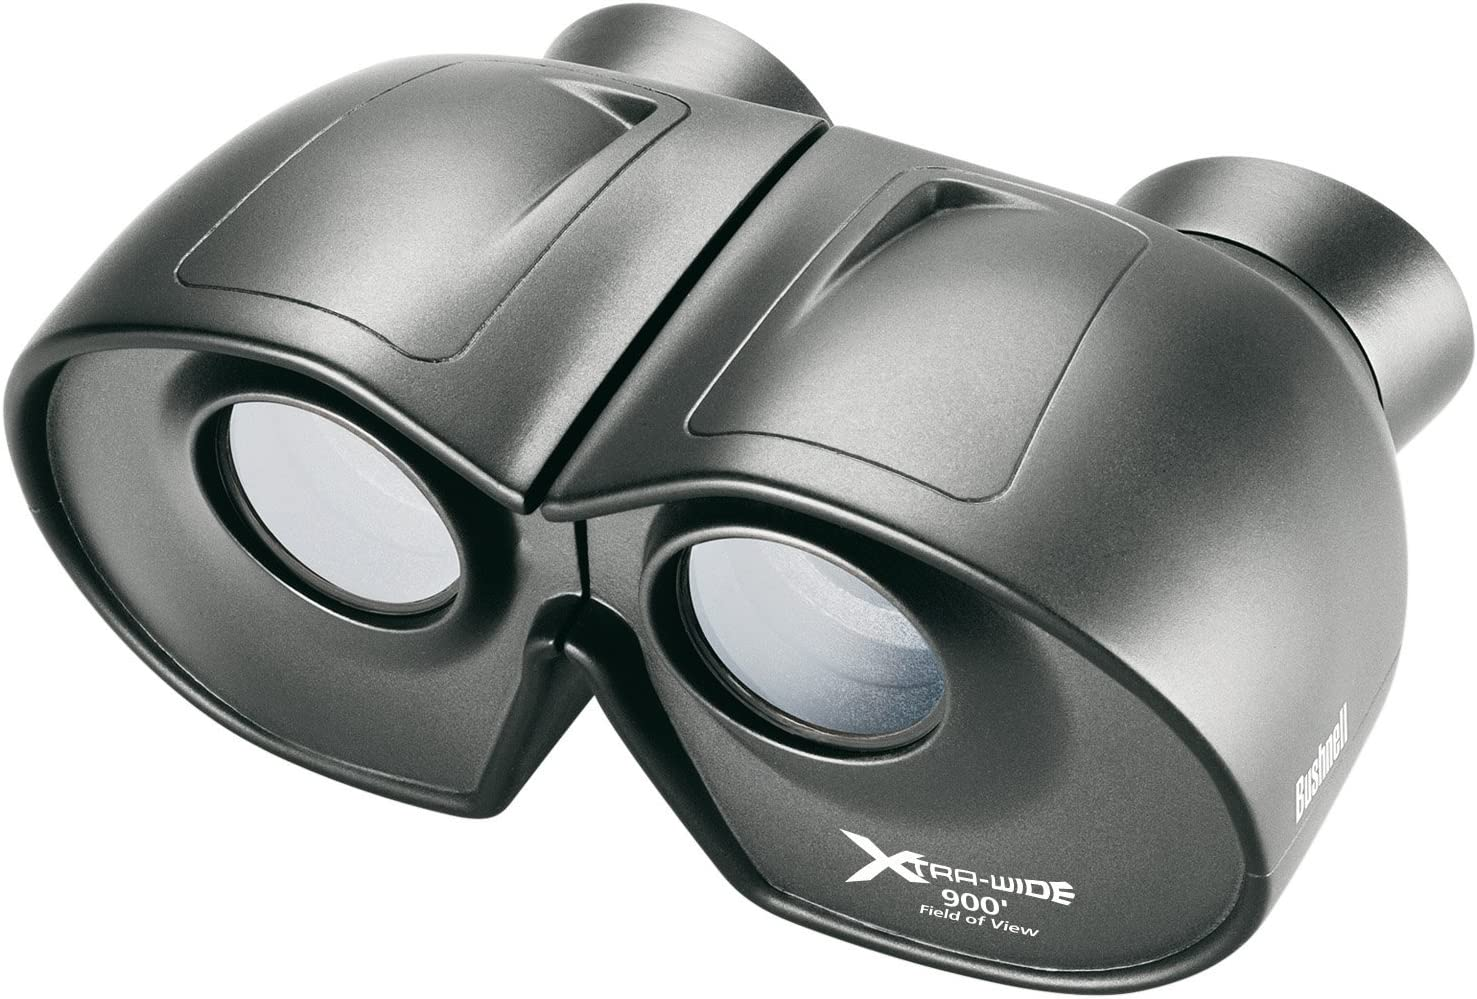 Bushnell Spector 4x30mm Extra-Wide Compact Binoculars